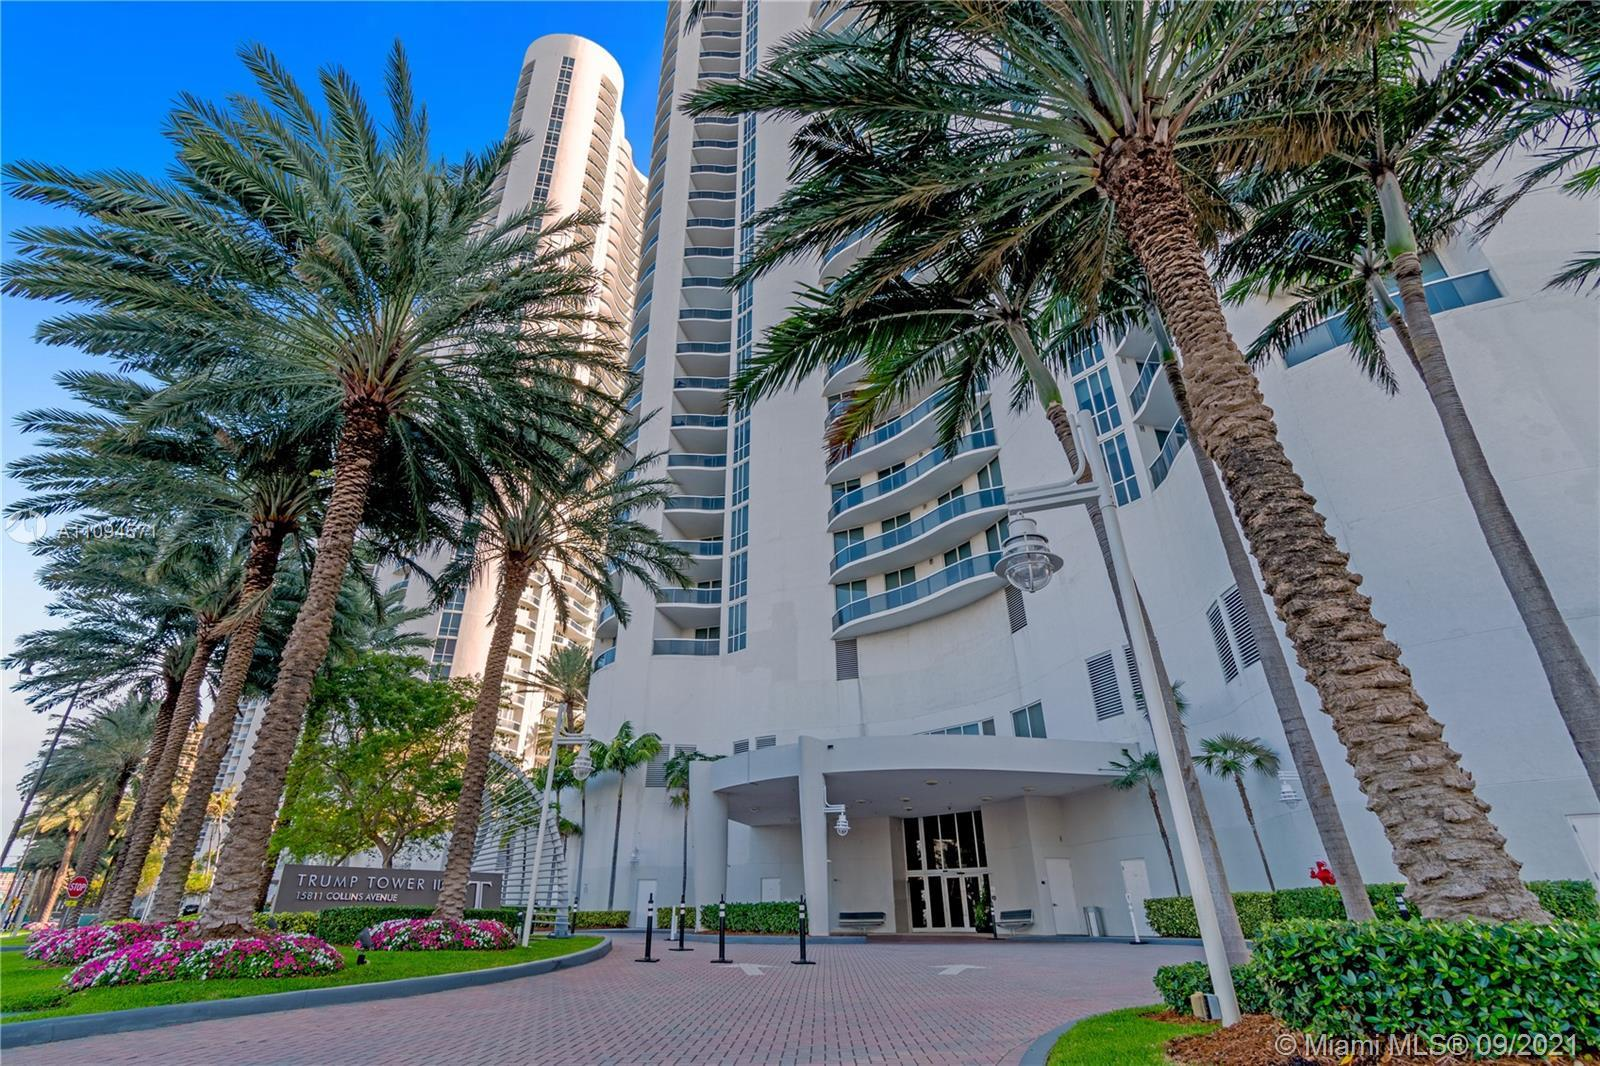 3-bedroom/3.5-bathroom apartment in Trump Tower Sunny Isles Beach. Features a private elevator entra